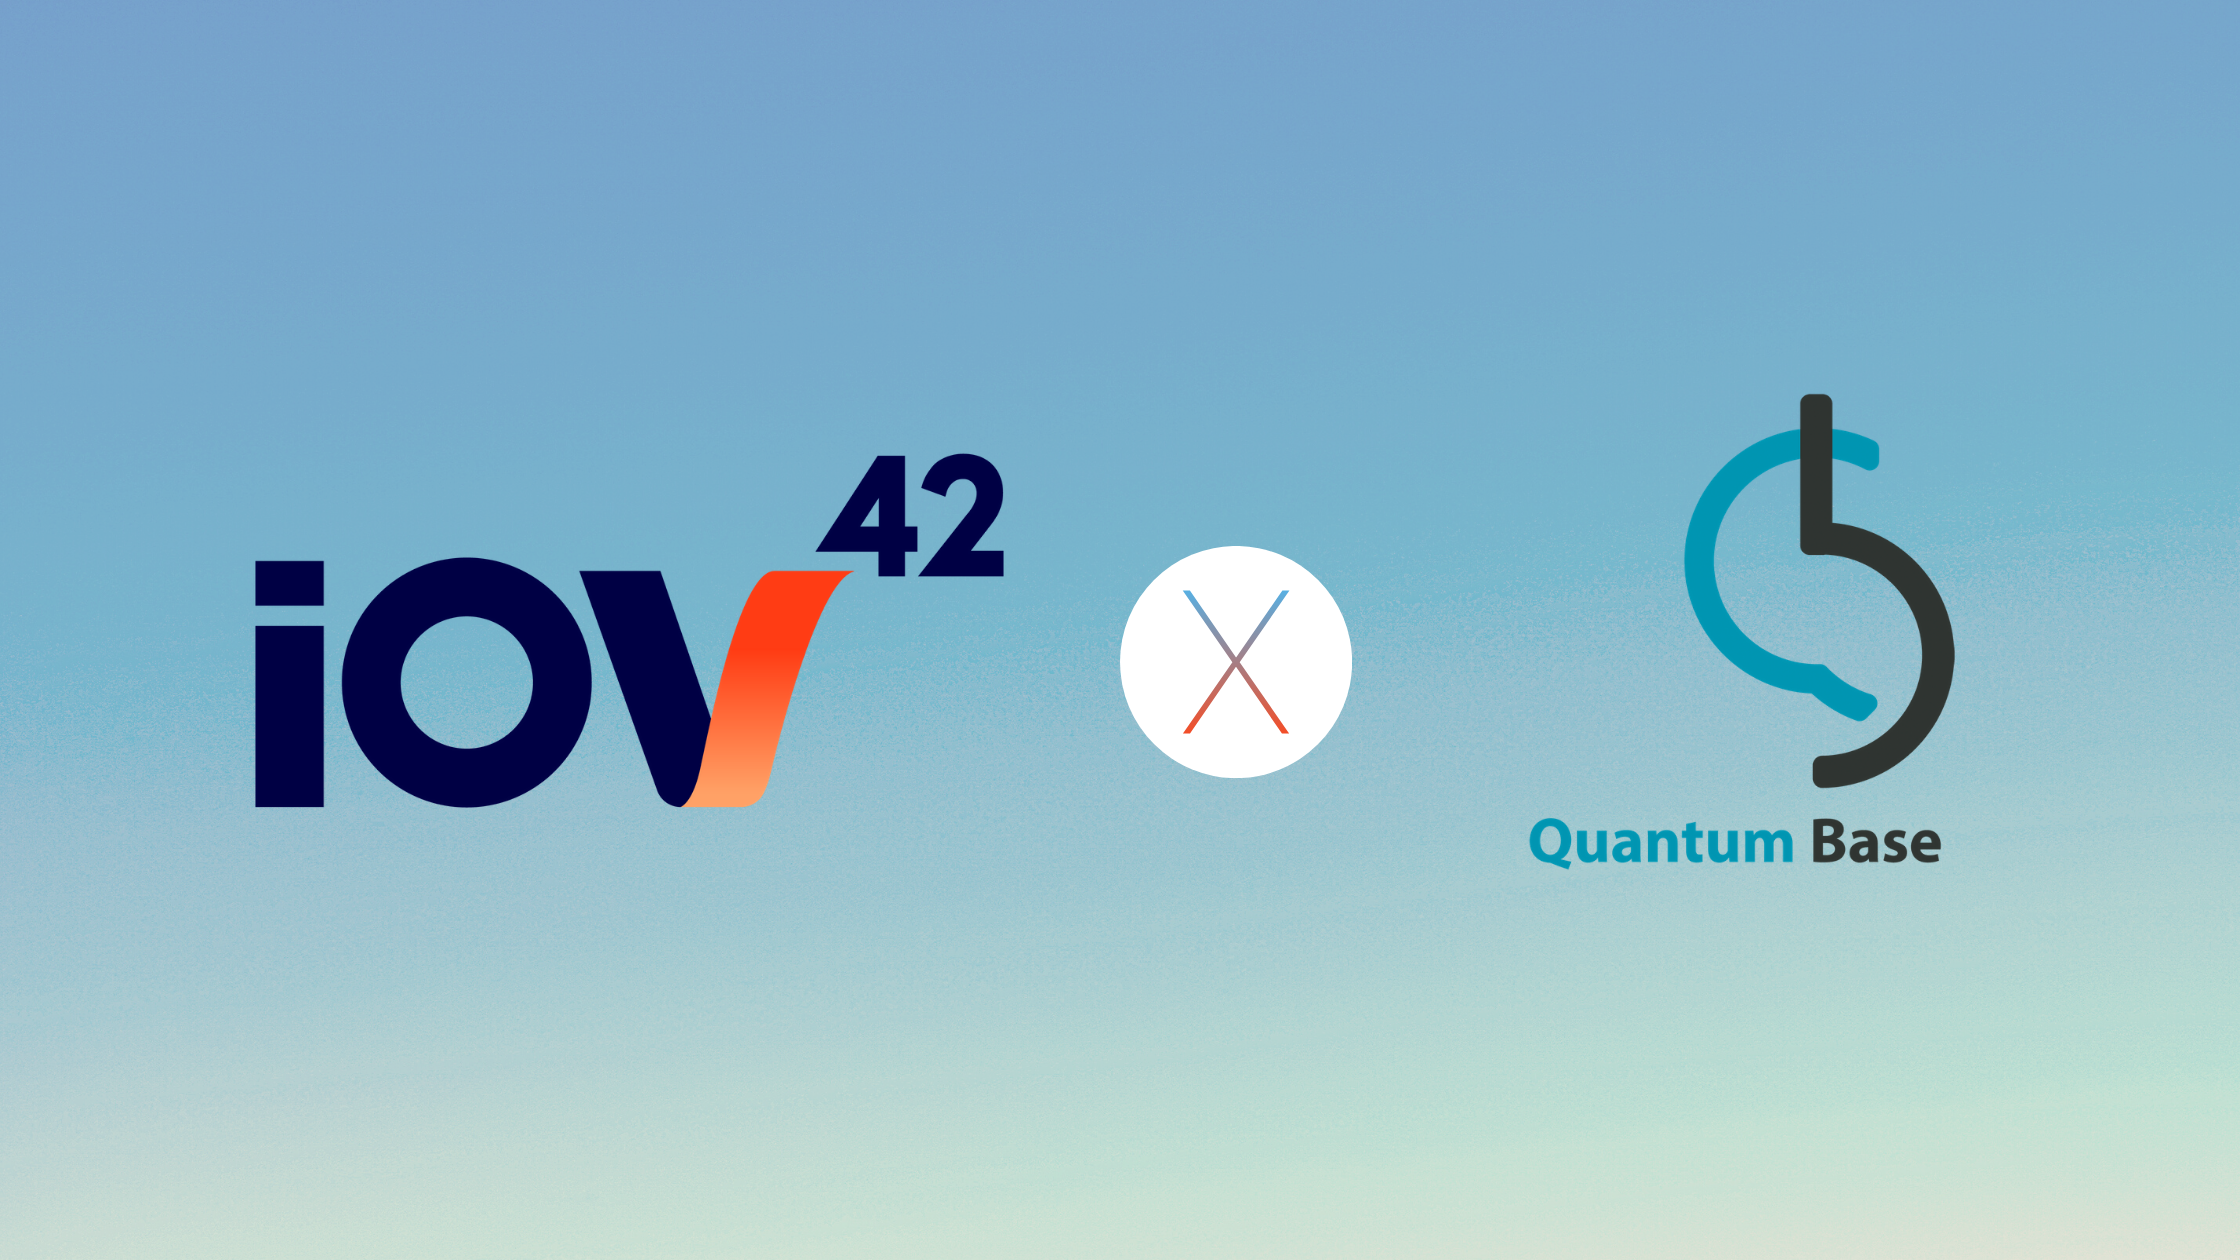 iov42 is pleased to work with Quantum Base